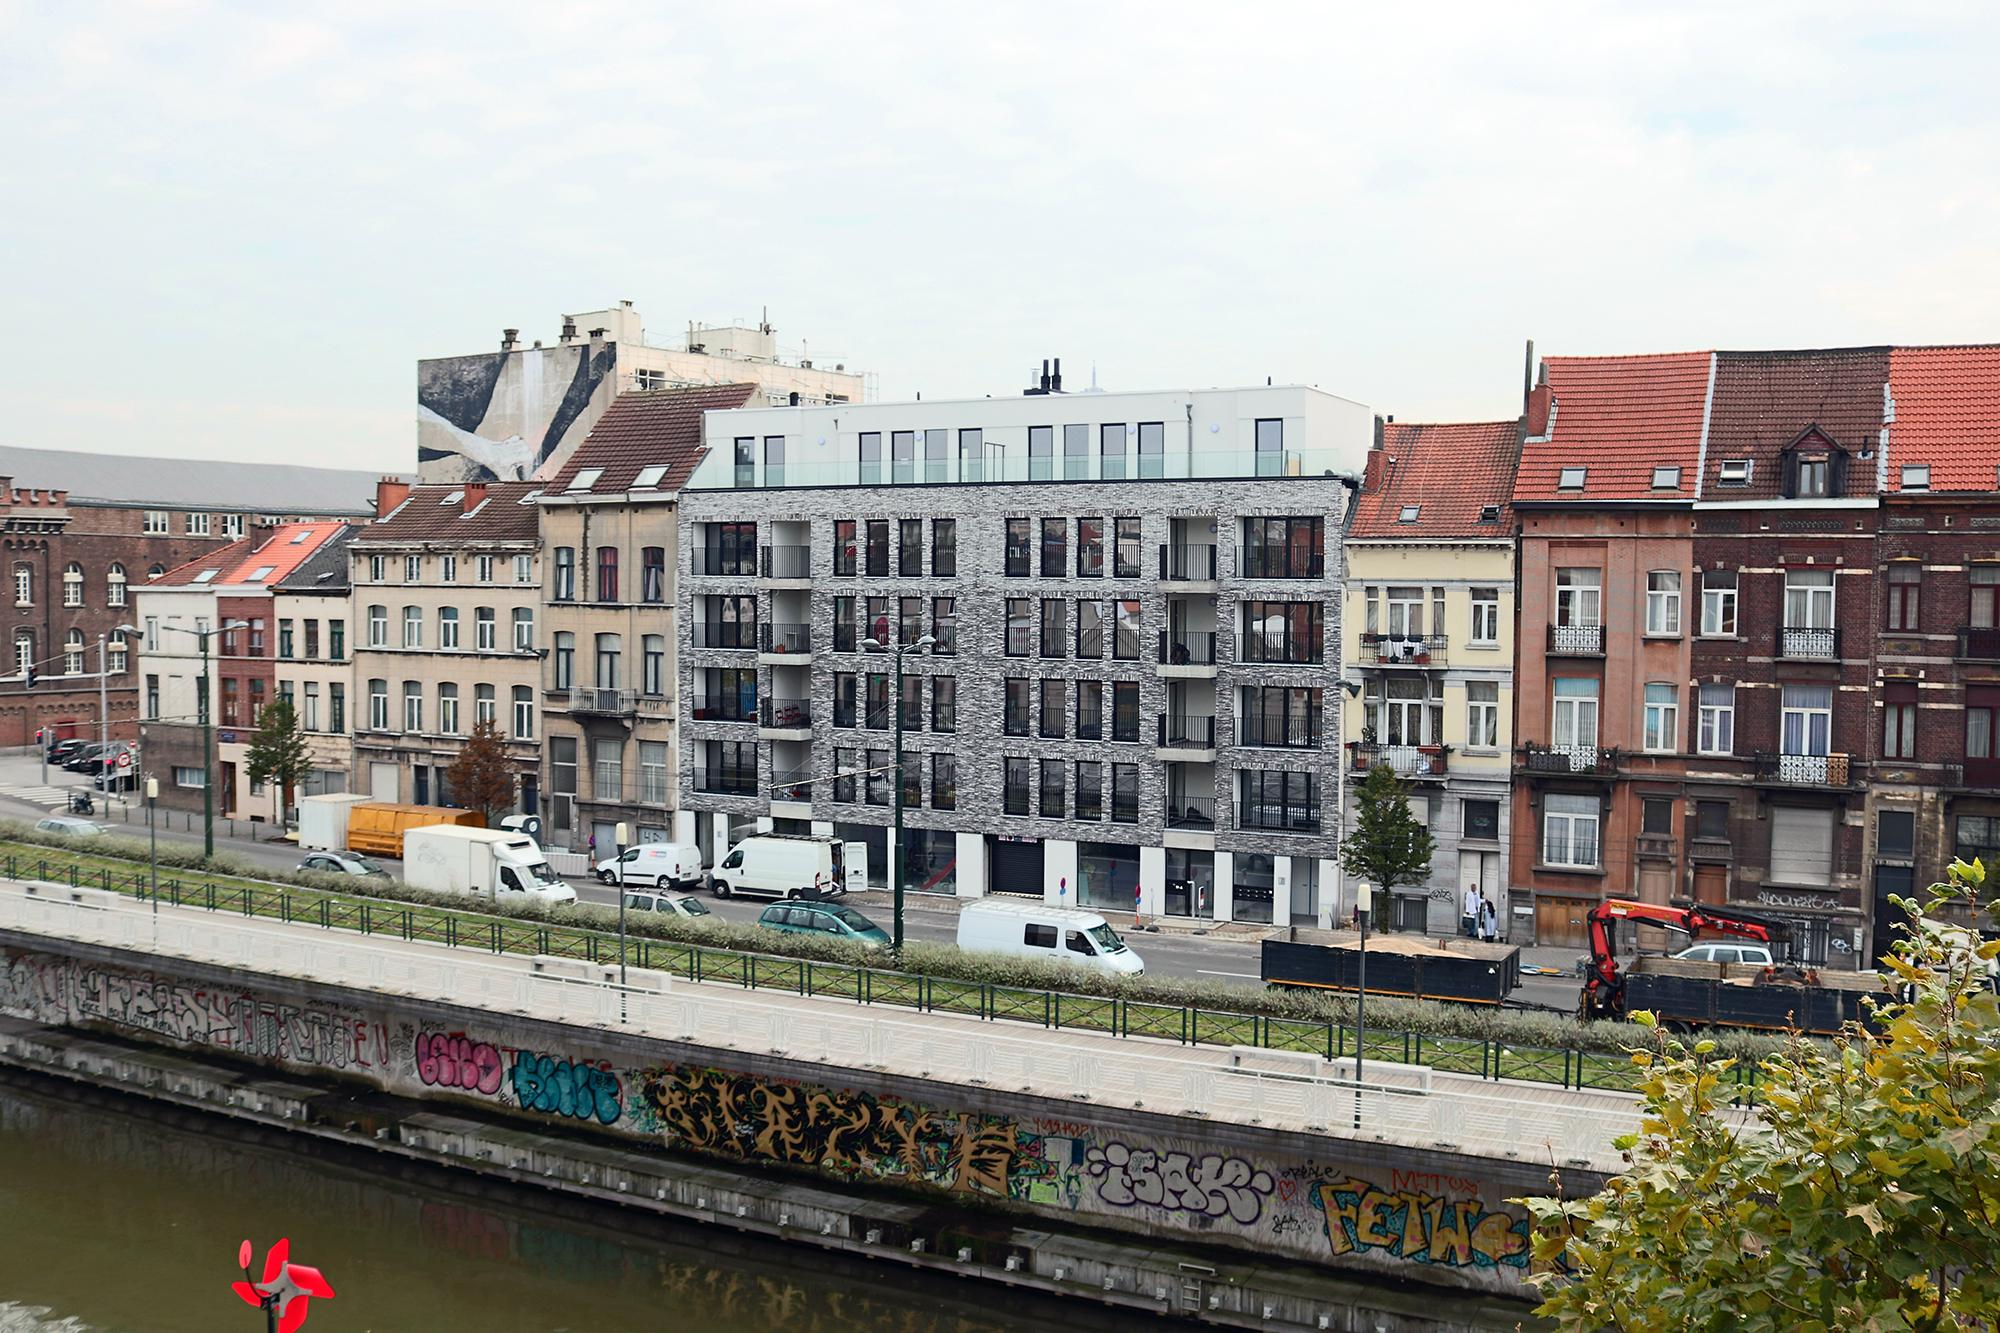 Canalview te Brussel